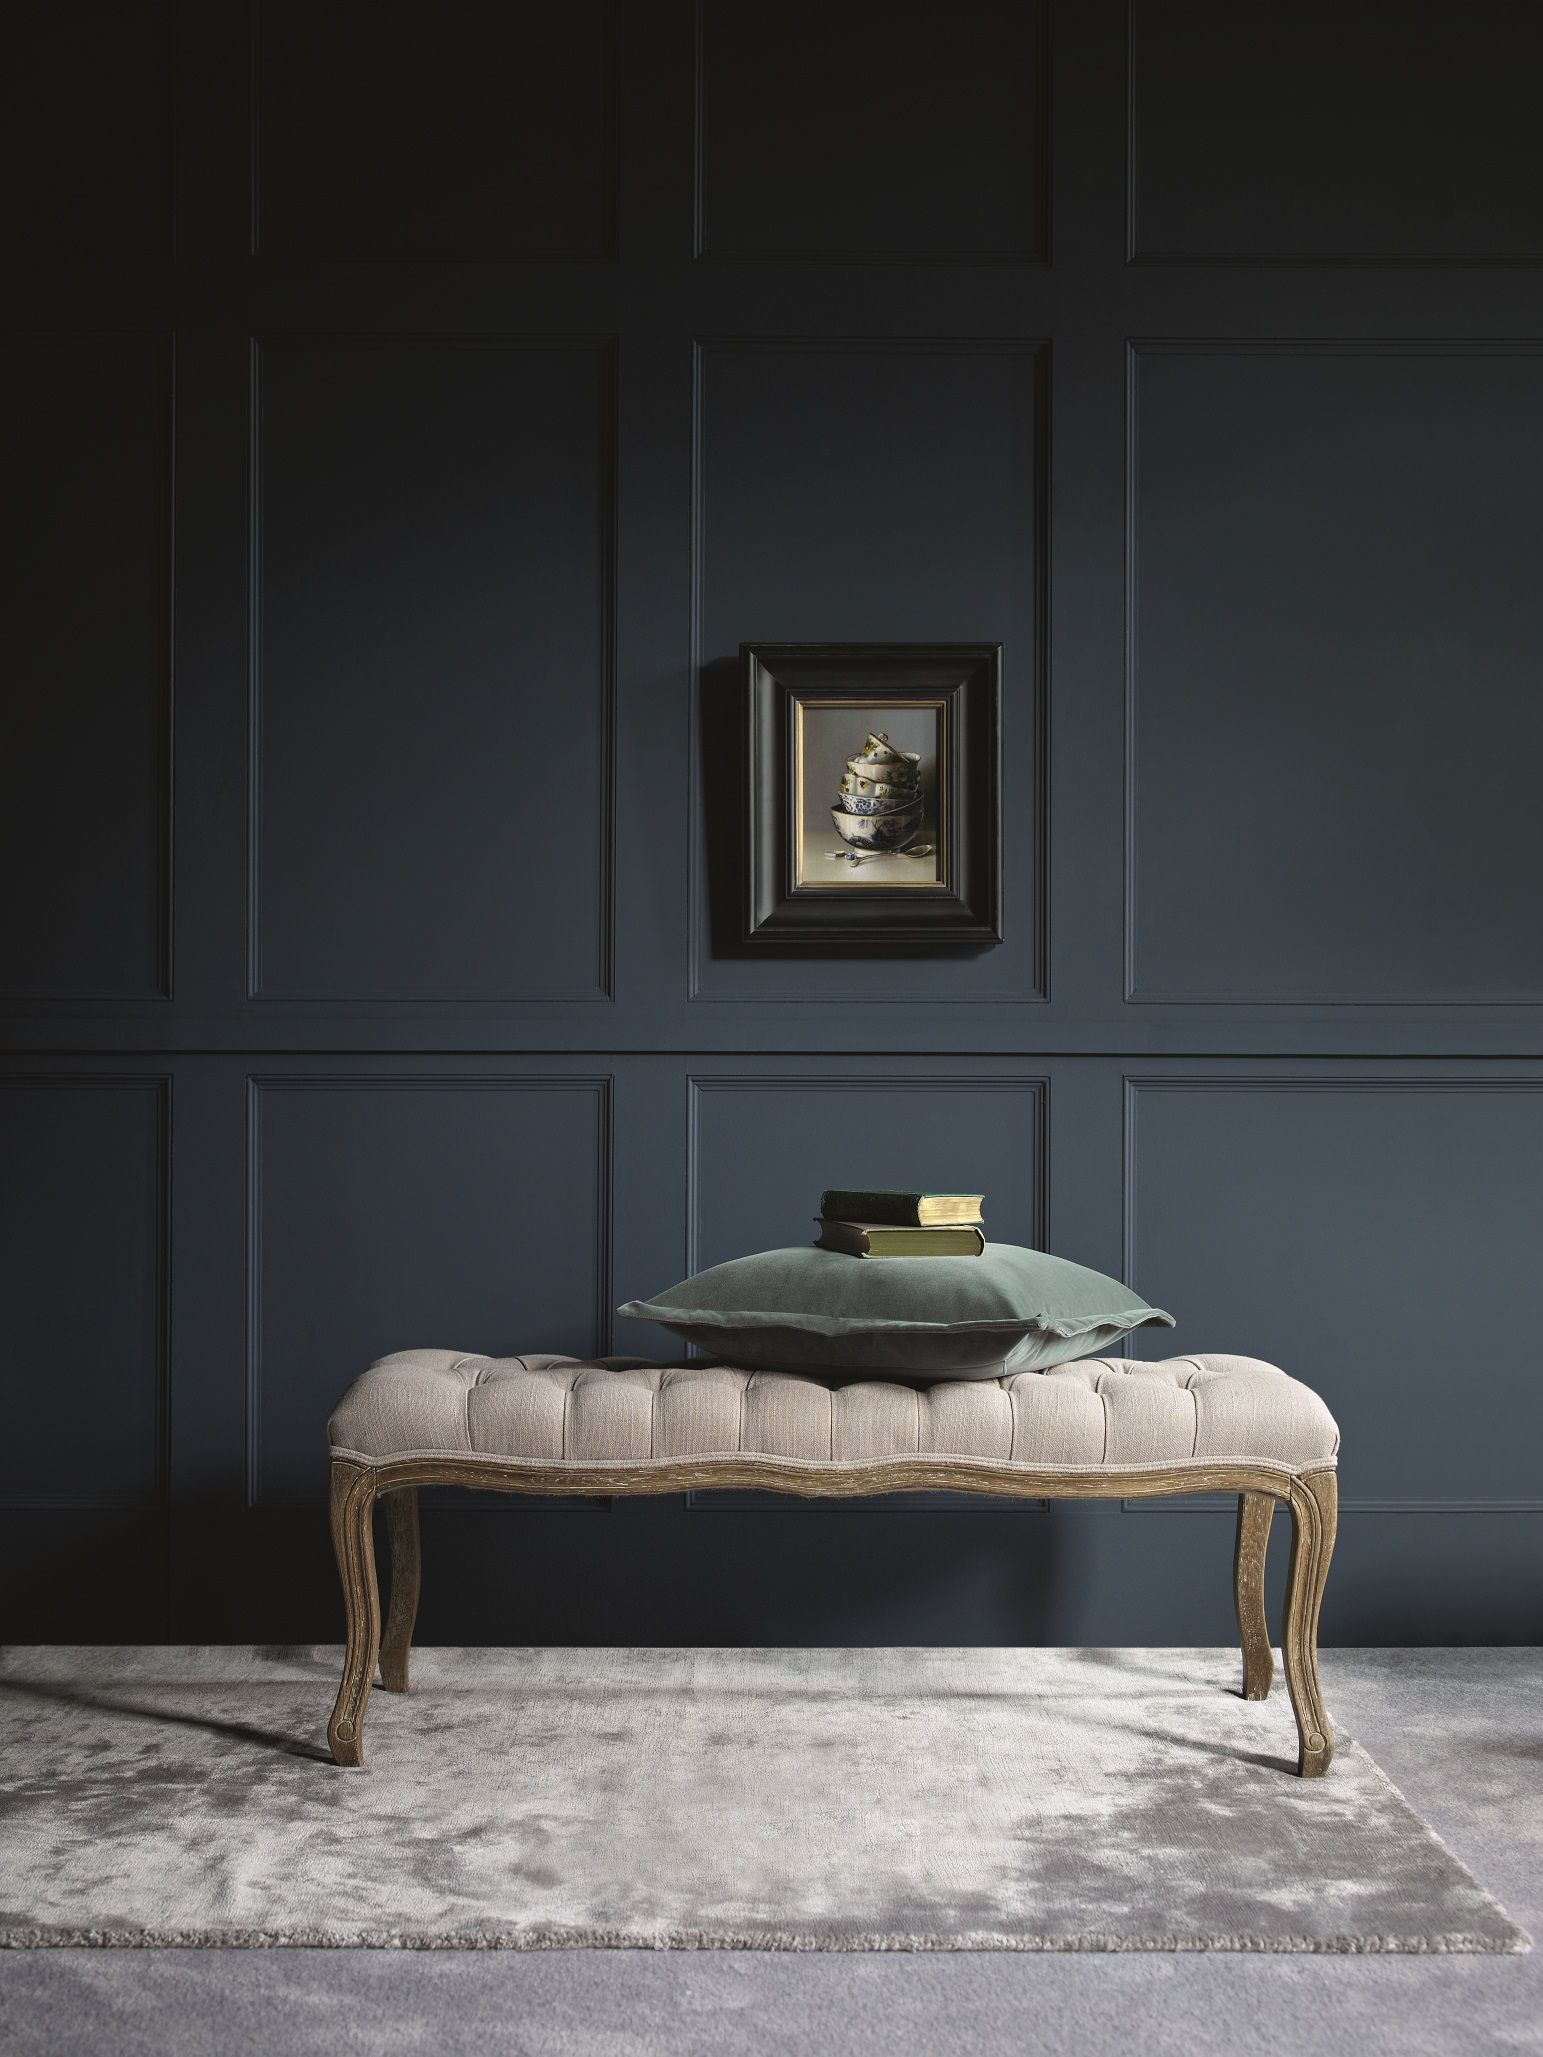 Panelled Room: Really Drawn To This Image. Love The Silvery Tones And